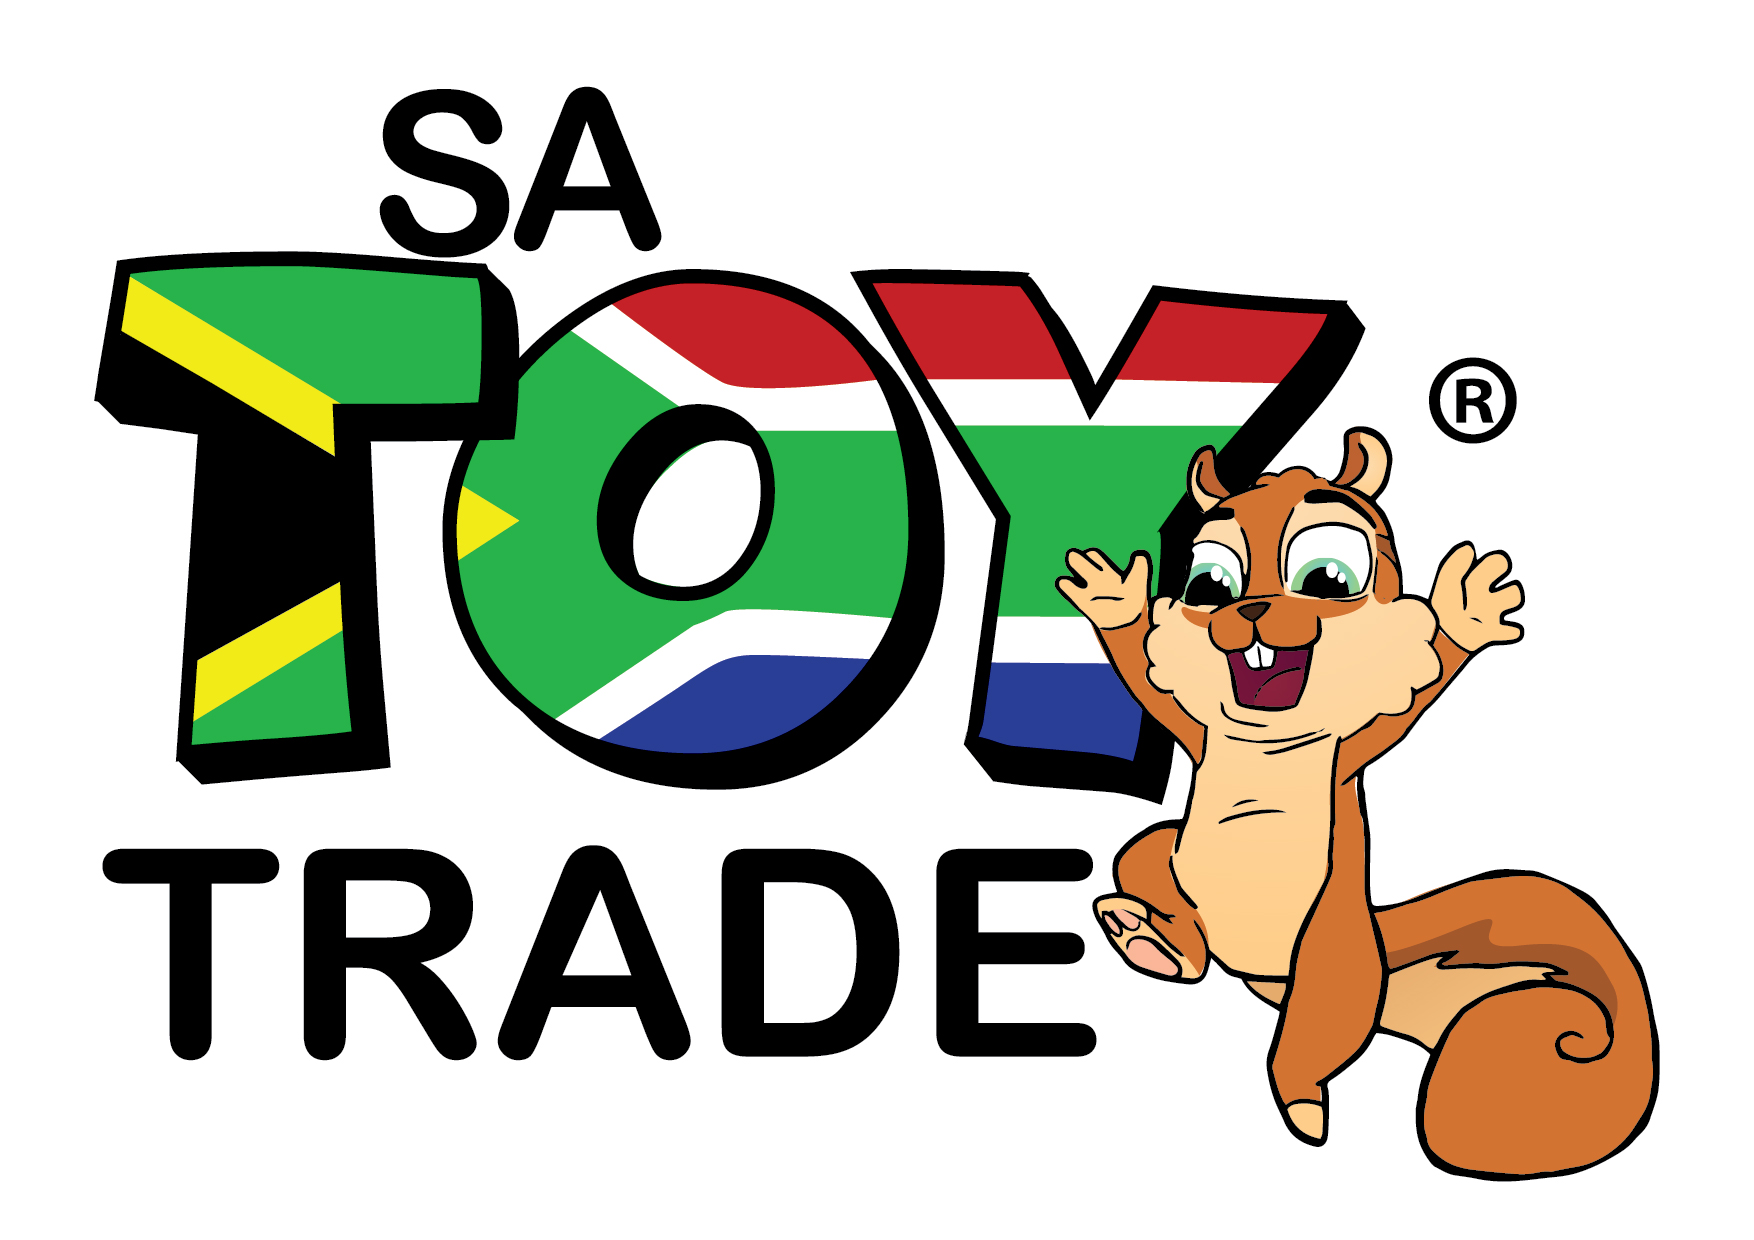 SAToyTrade Educational Toy Company Logo